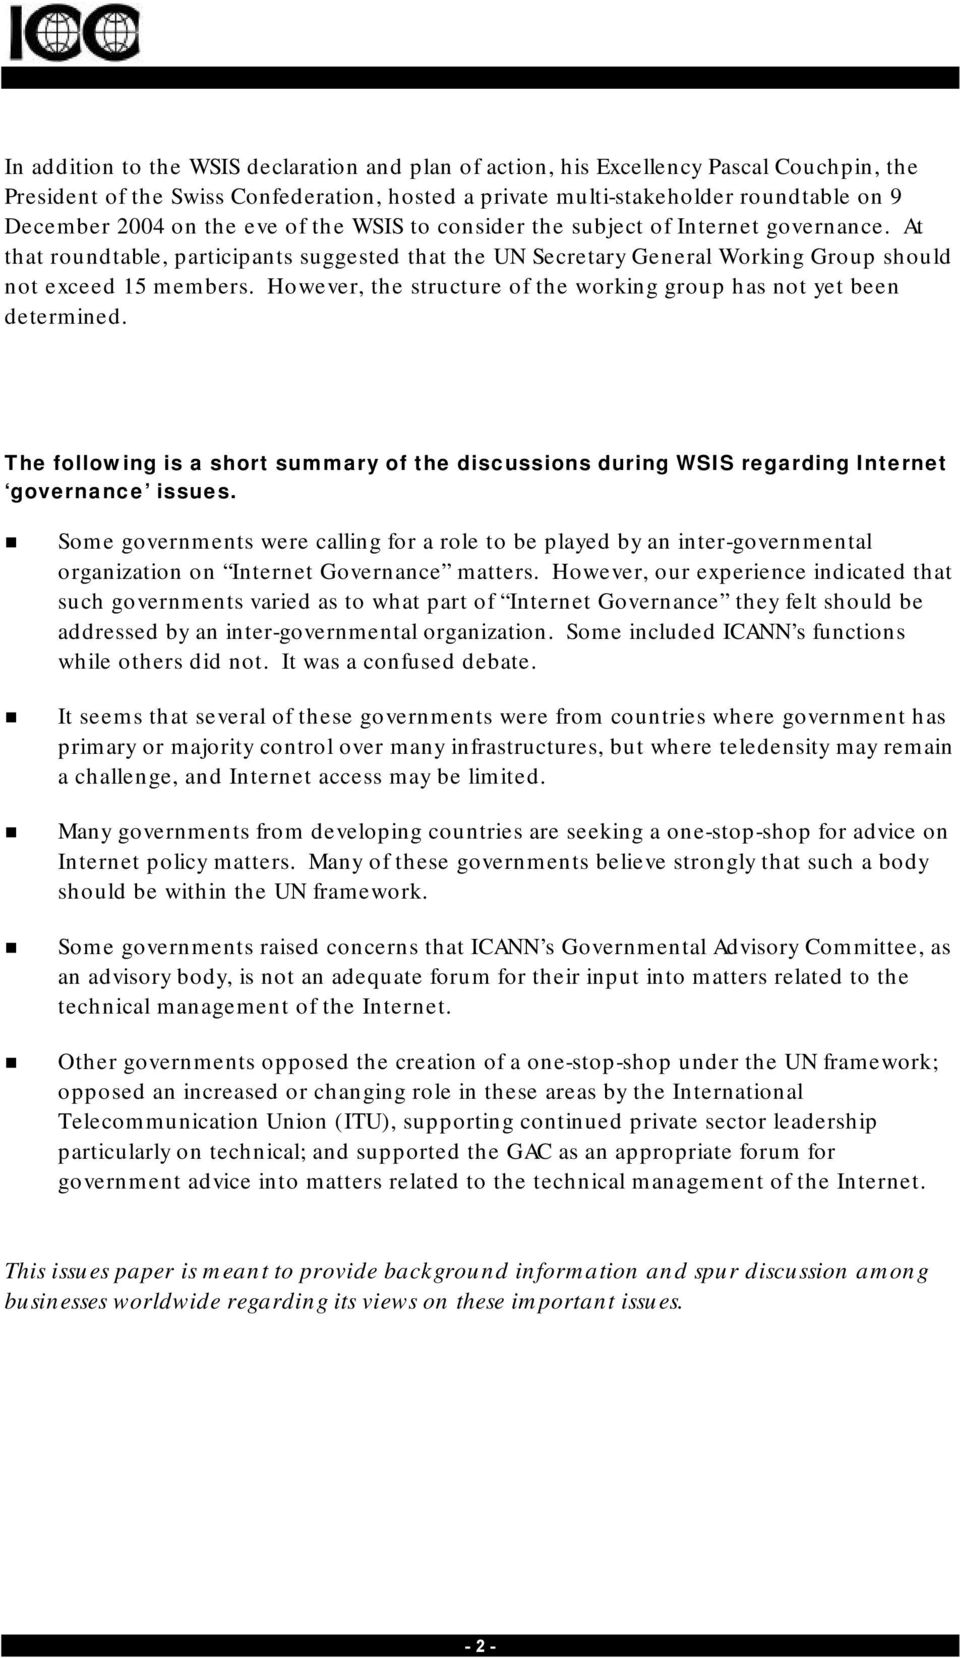 However, the structure of the working group has not yet been determined. The following is a short summary of the discussions during WSIS regarding Internet governance issues.